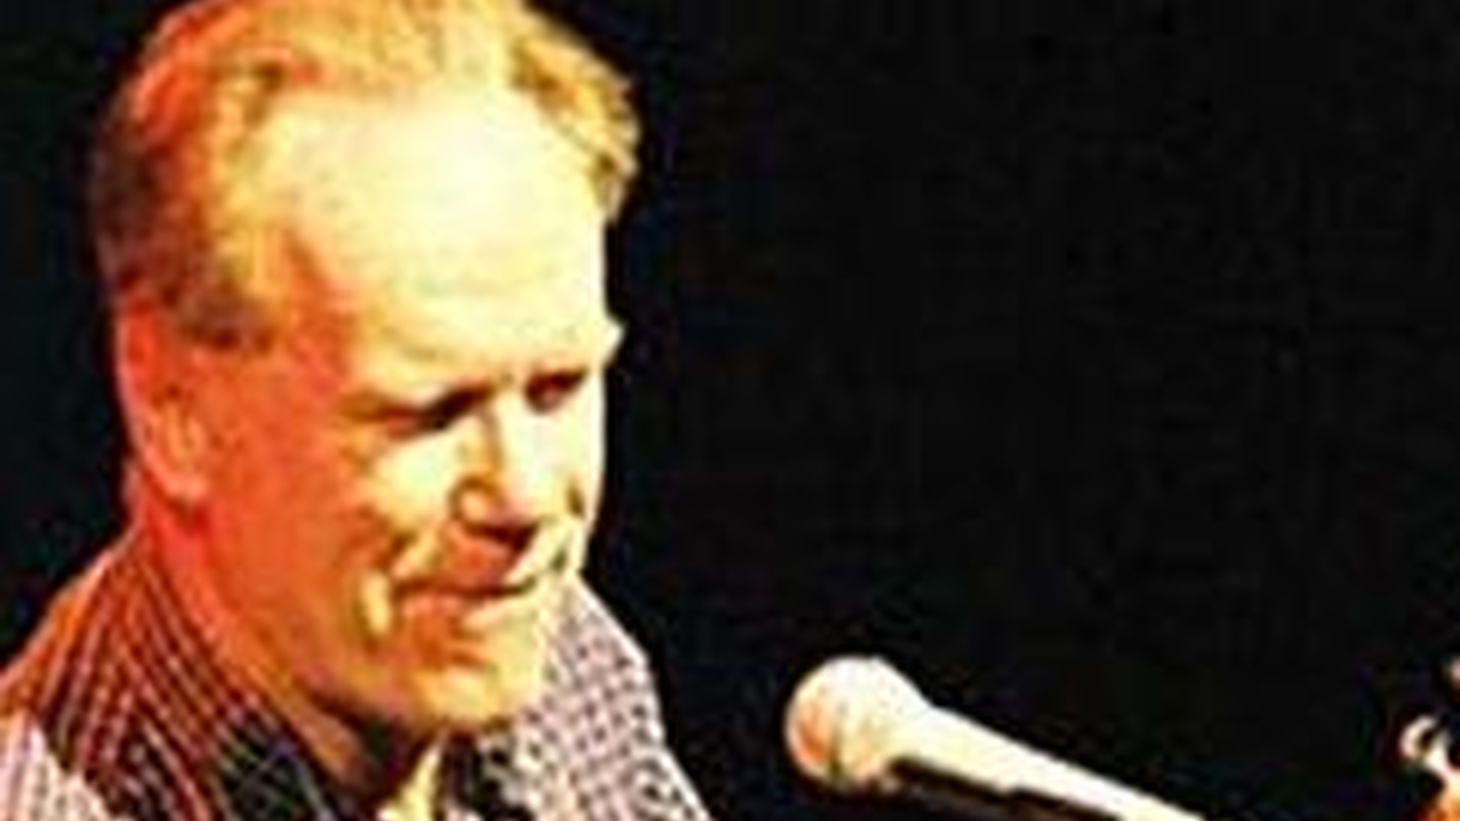 Raconteur, actor and singer Loudon Wainwright III returns this time with a band to Morning Becomes Eclectic at 11:15am.